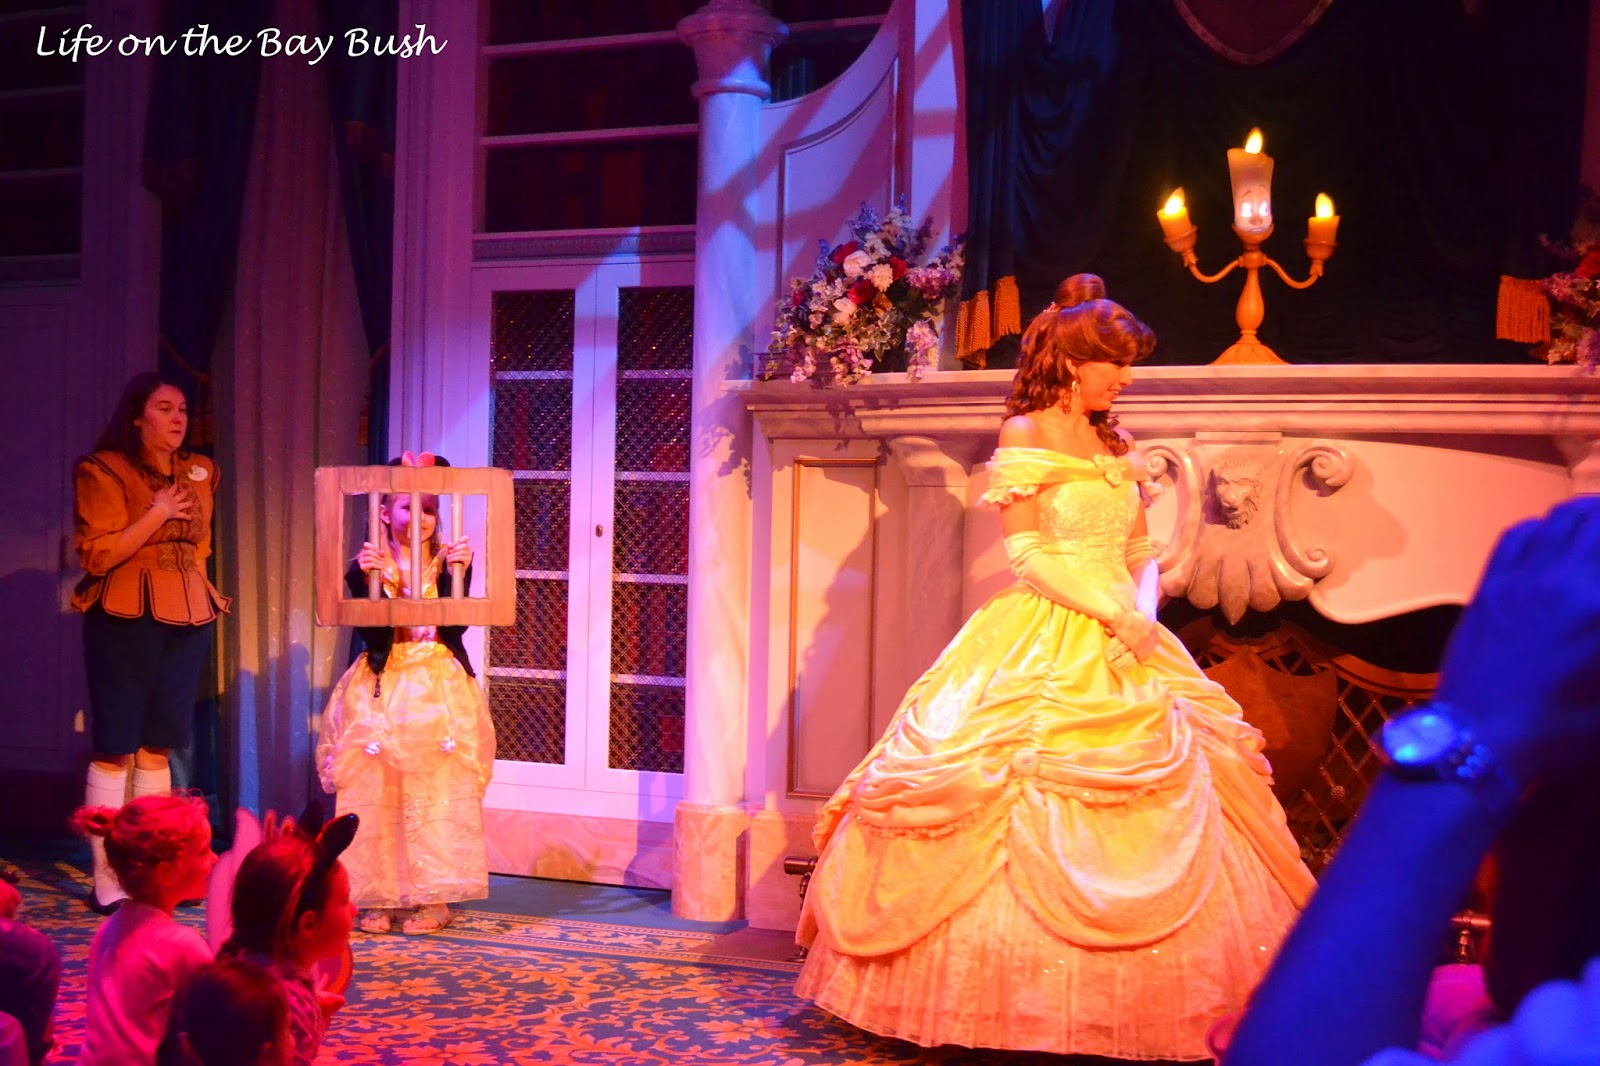 Disney's Magic Kingdom Enchanted Tales with Belle